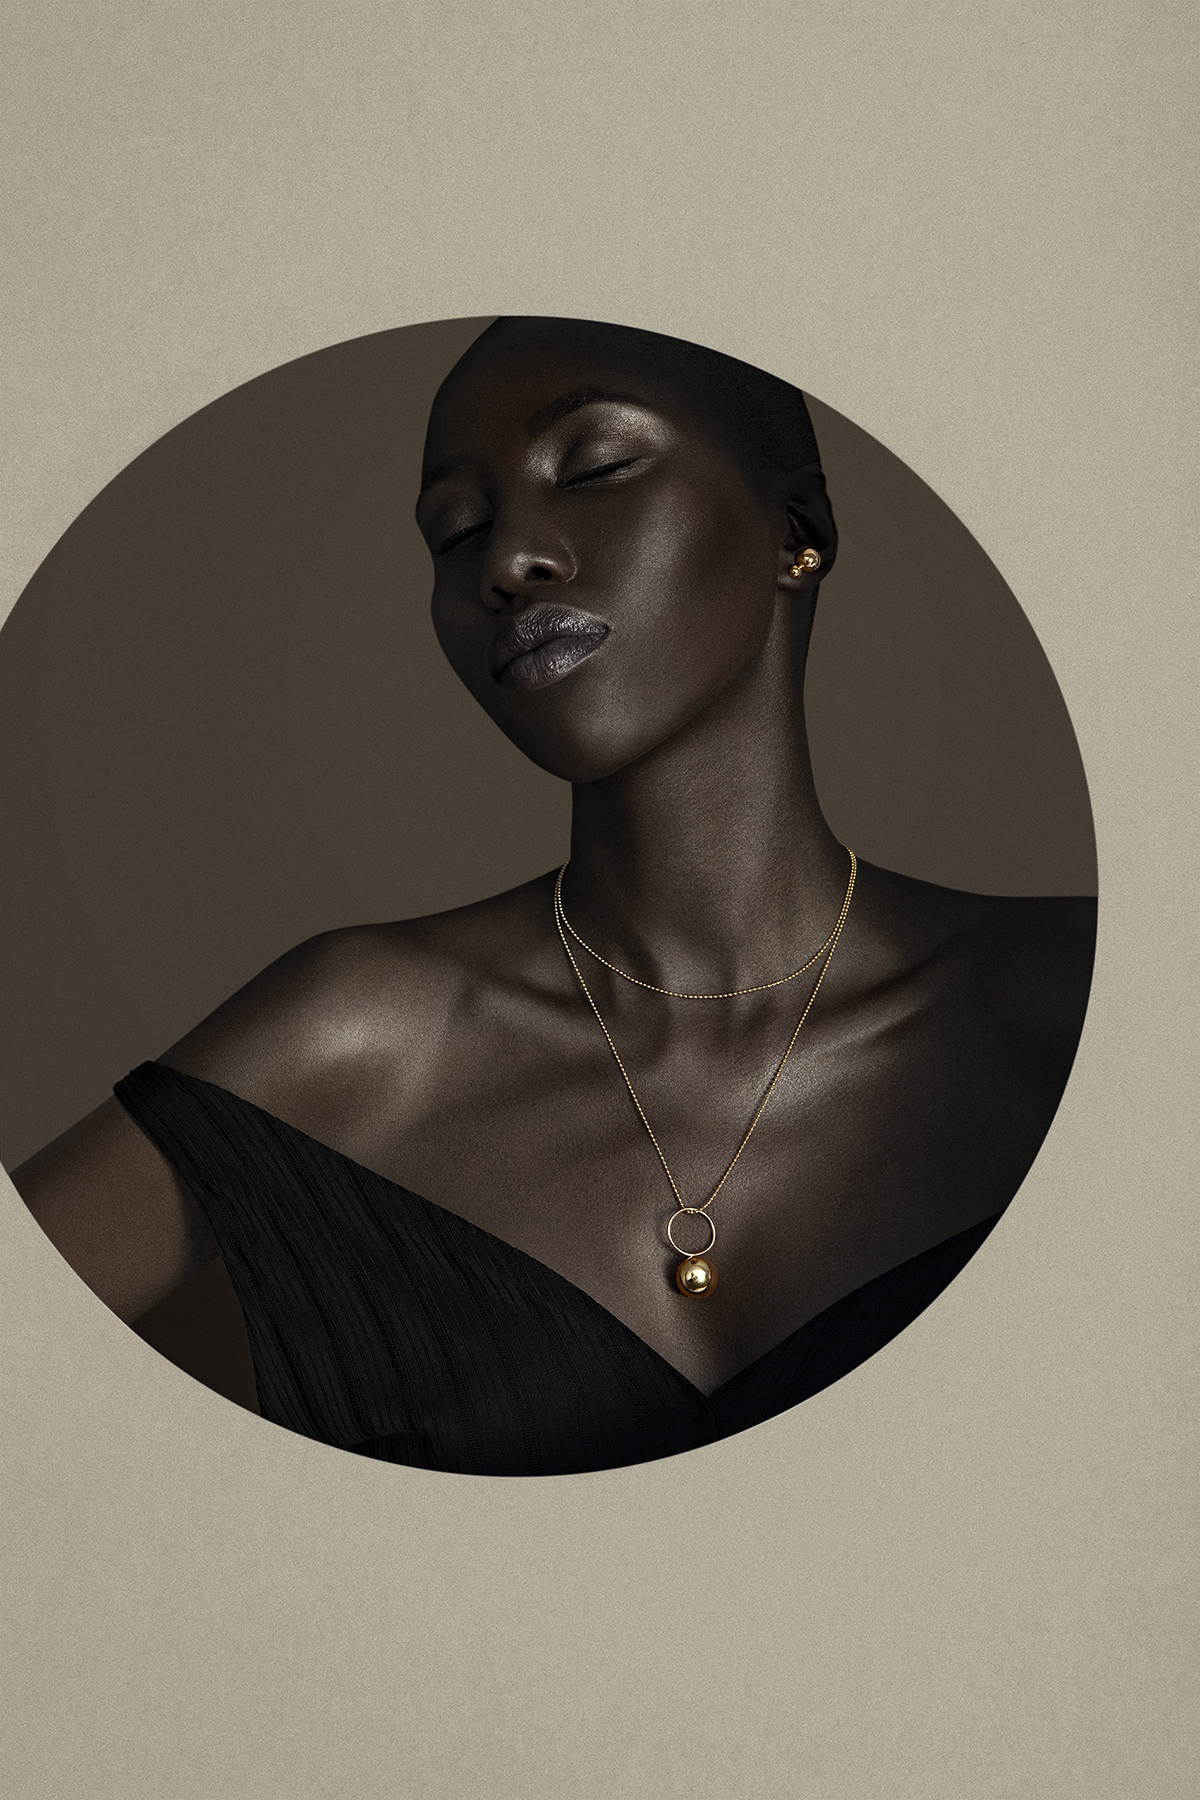 giannina oteto for nashira arno jewelry nyc based fashion latin american designer dominican republic statement gold earrings oversized ring long pendant necklace bold sphere off shoulder shop online editorial pf19 .jpg